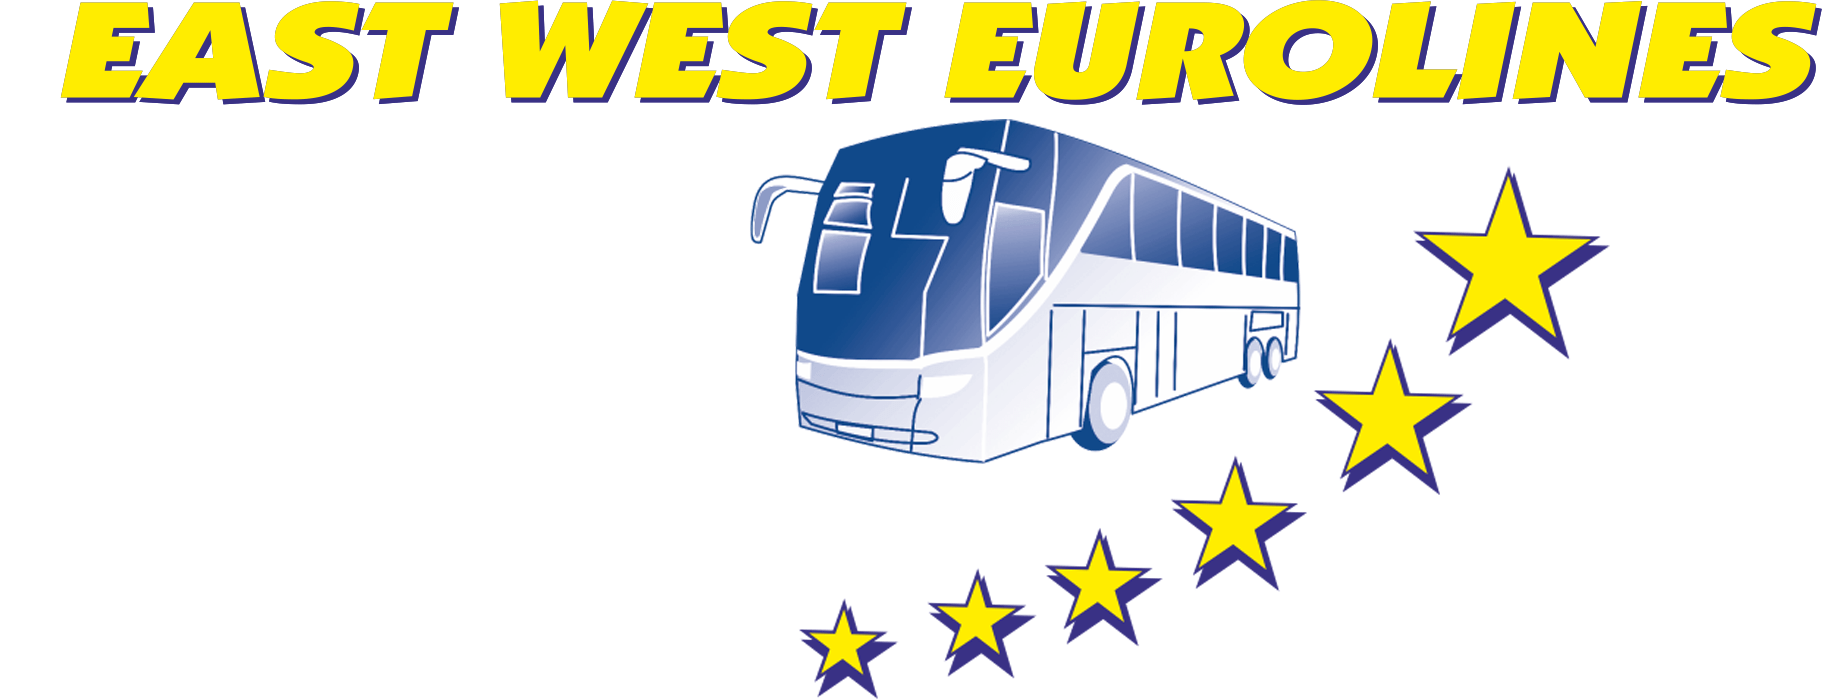 East West Eurolines: Reviews, Schedule and Tickets Booking.